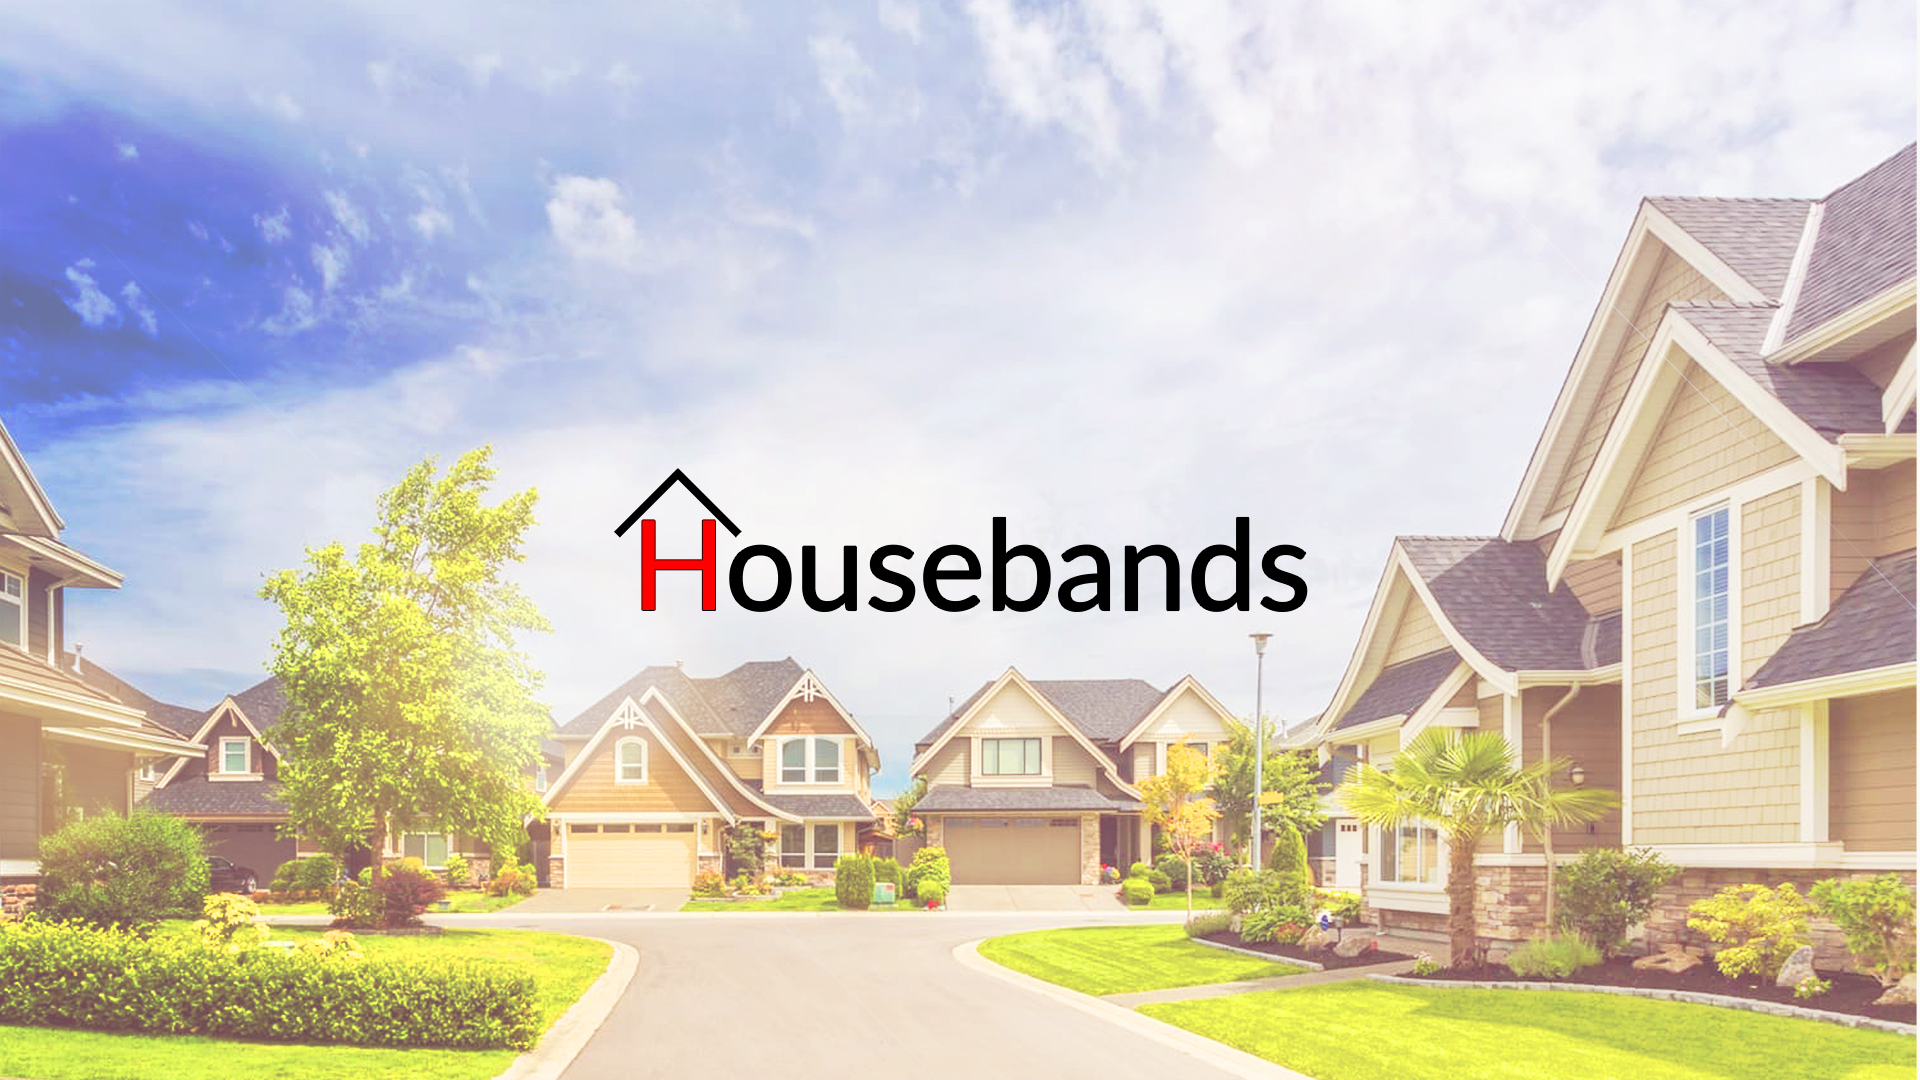 housebands 2k logo